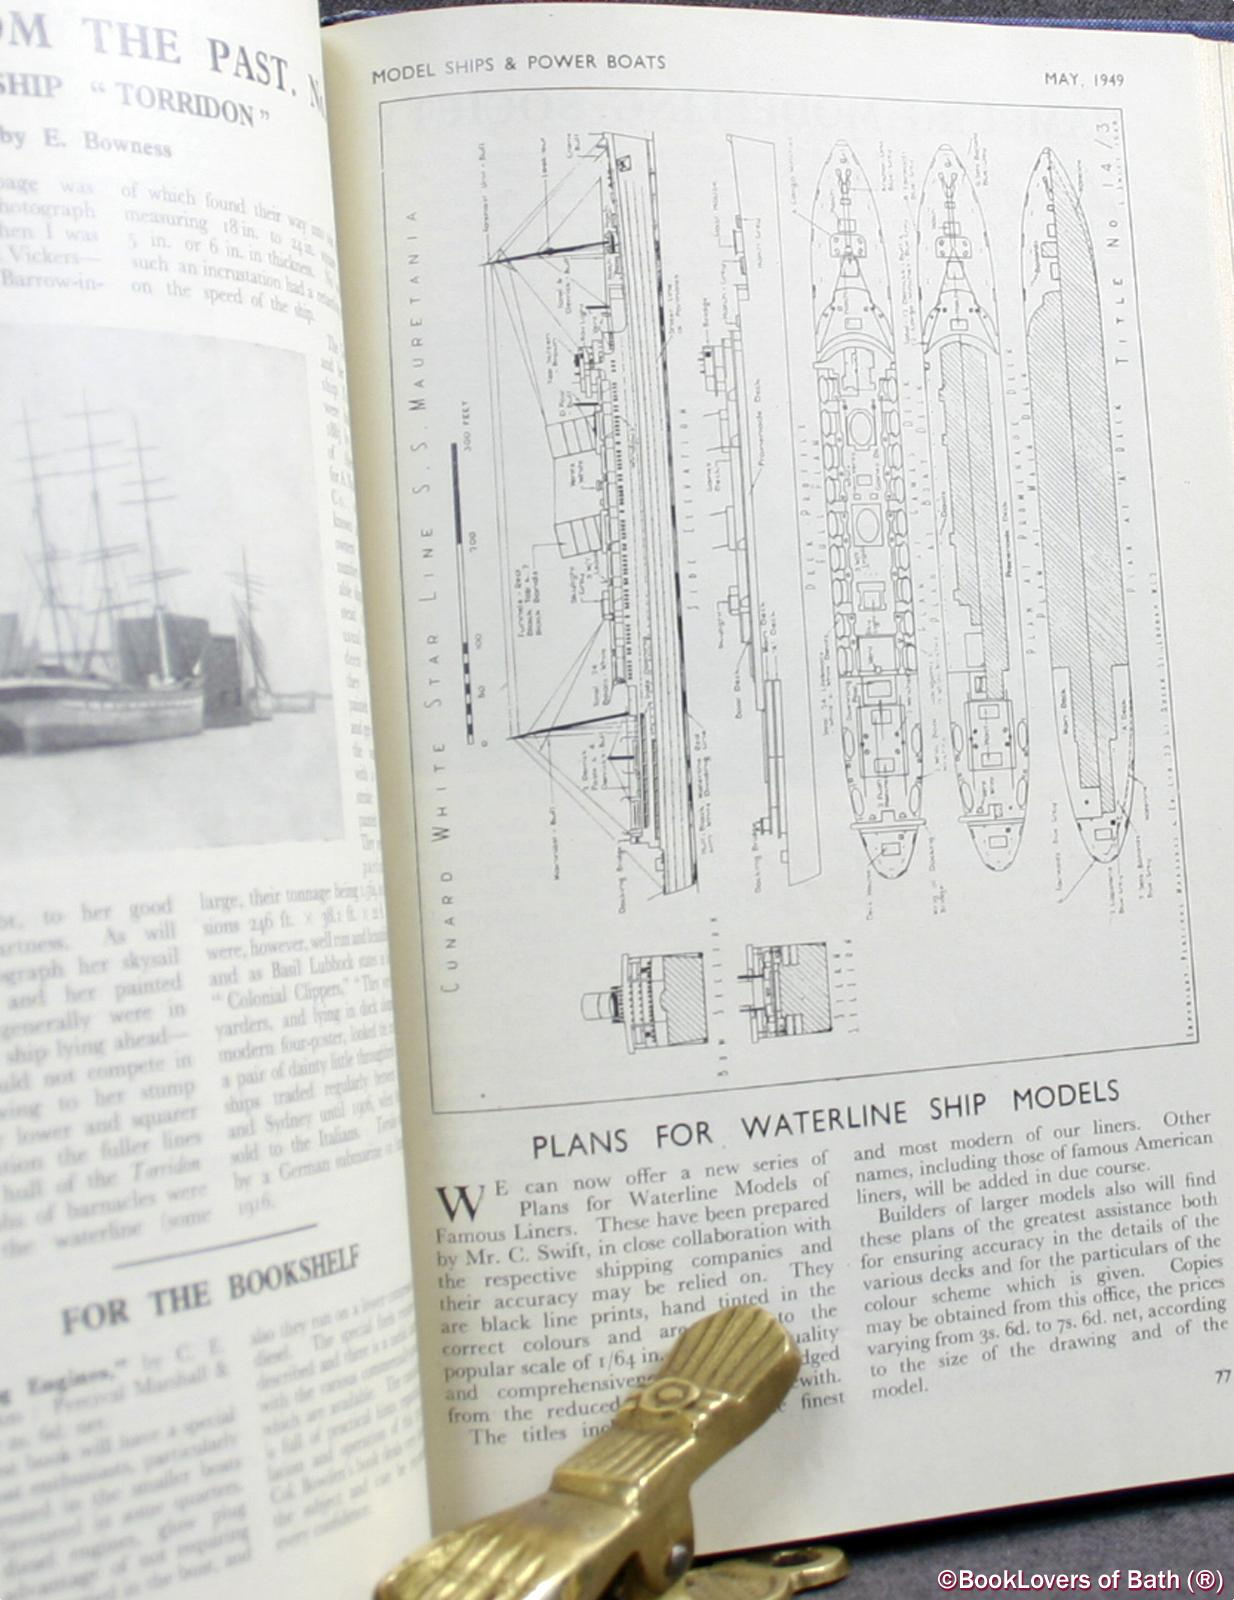 Model Ships and Power Boats Vol 1. No. 3 March 1948 - Vol. 3 No. 25 January 1950 - Anon.